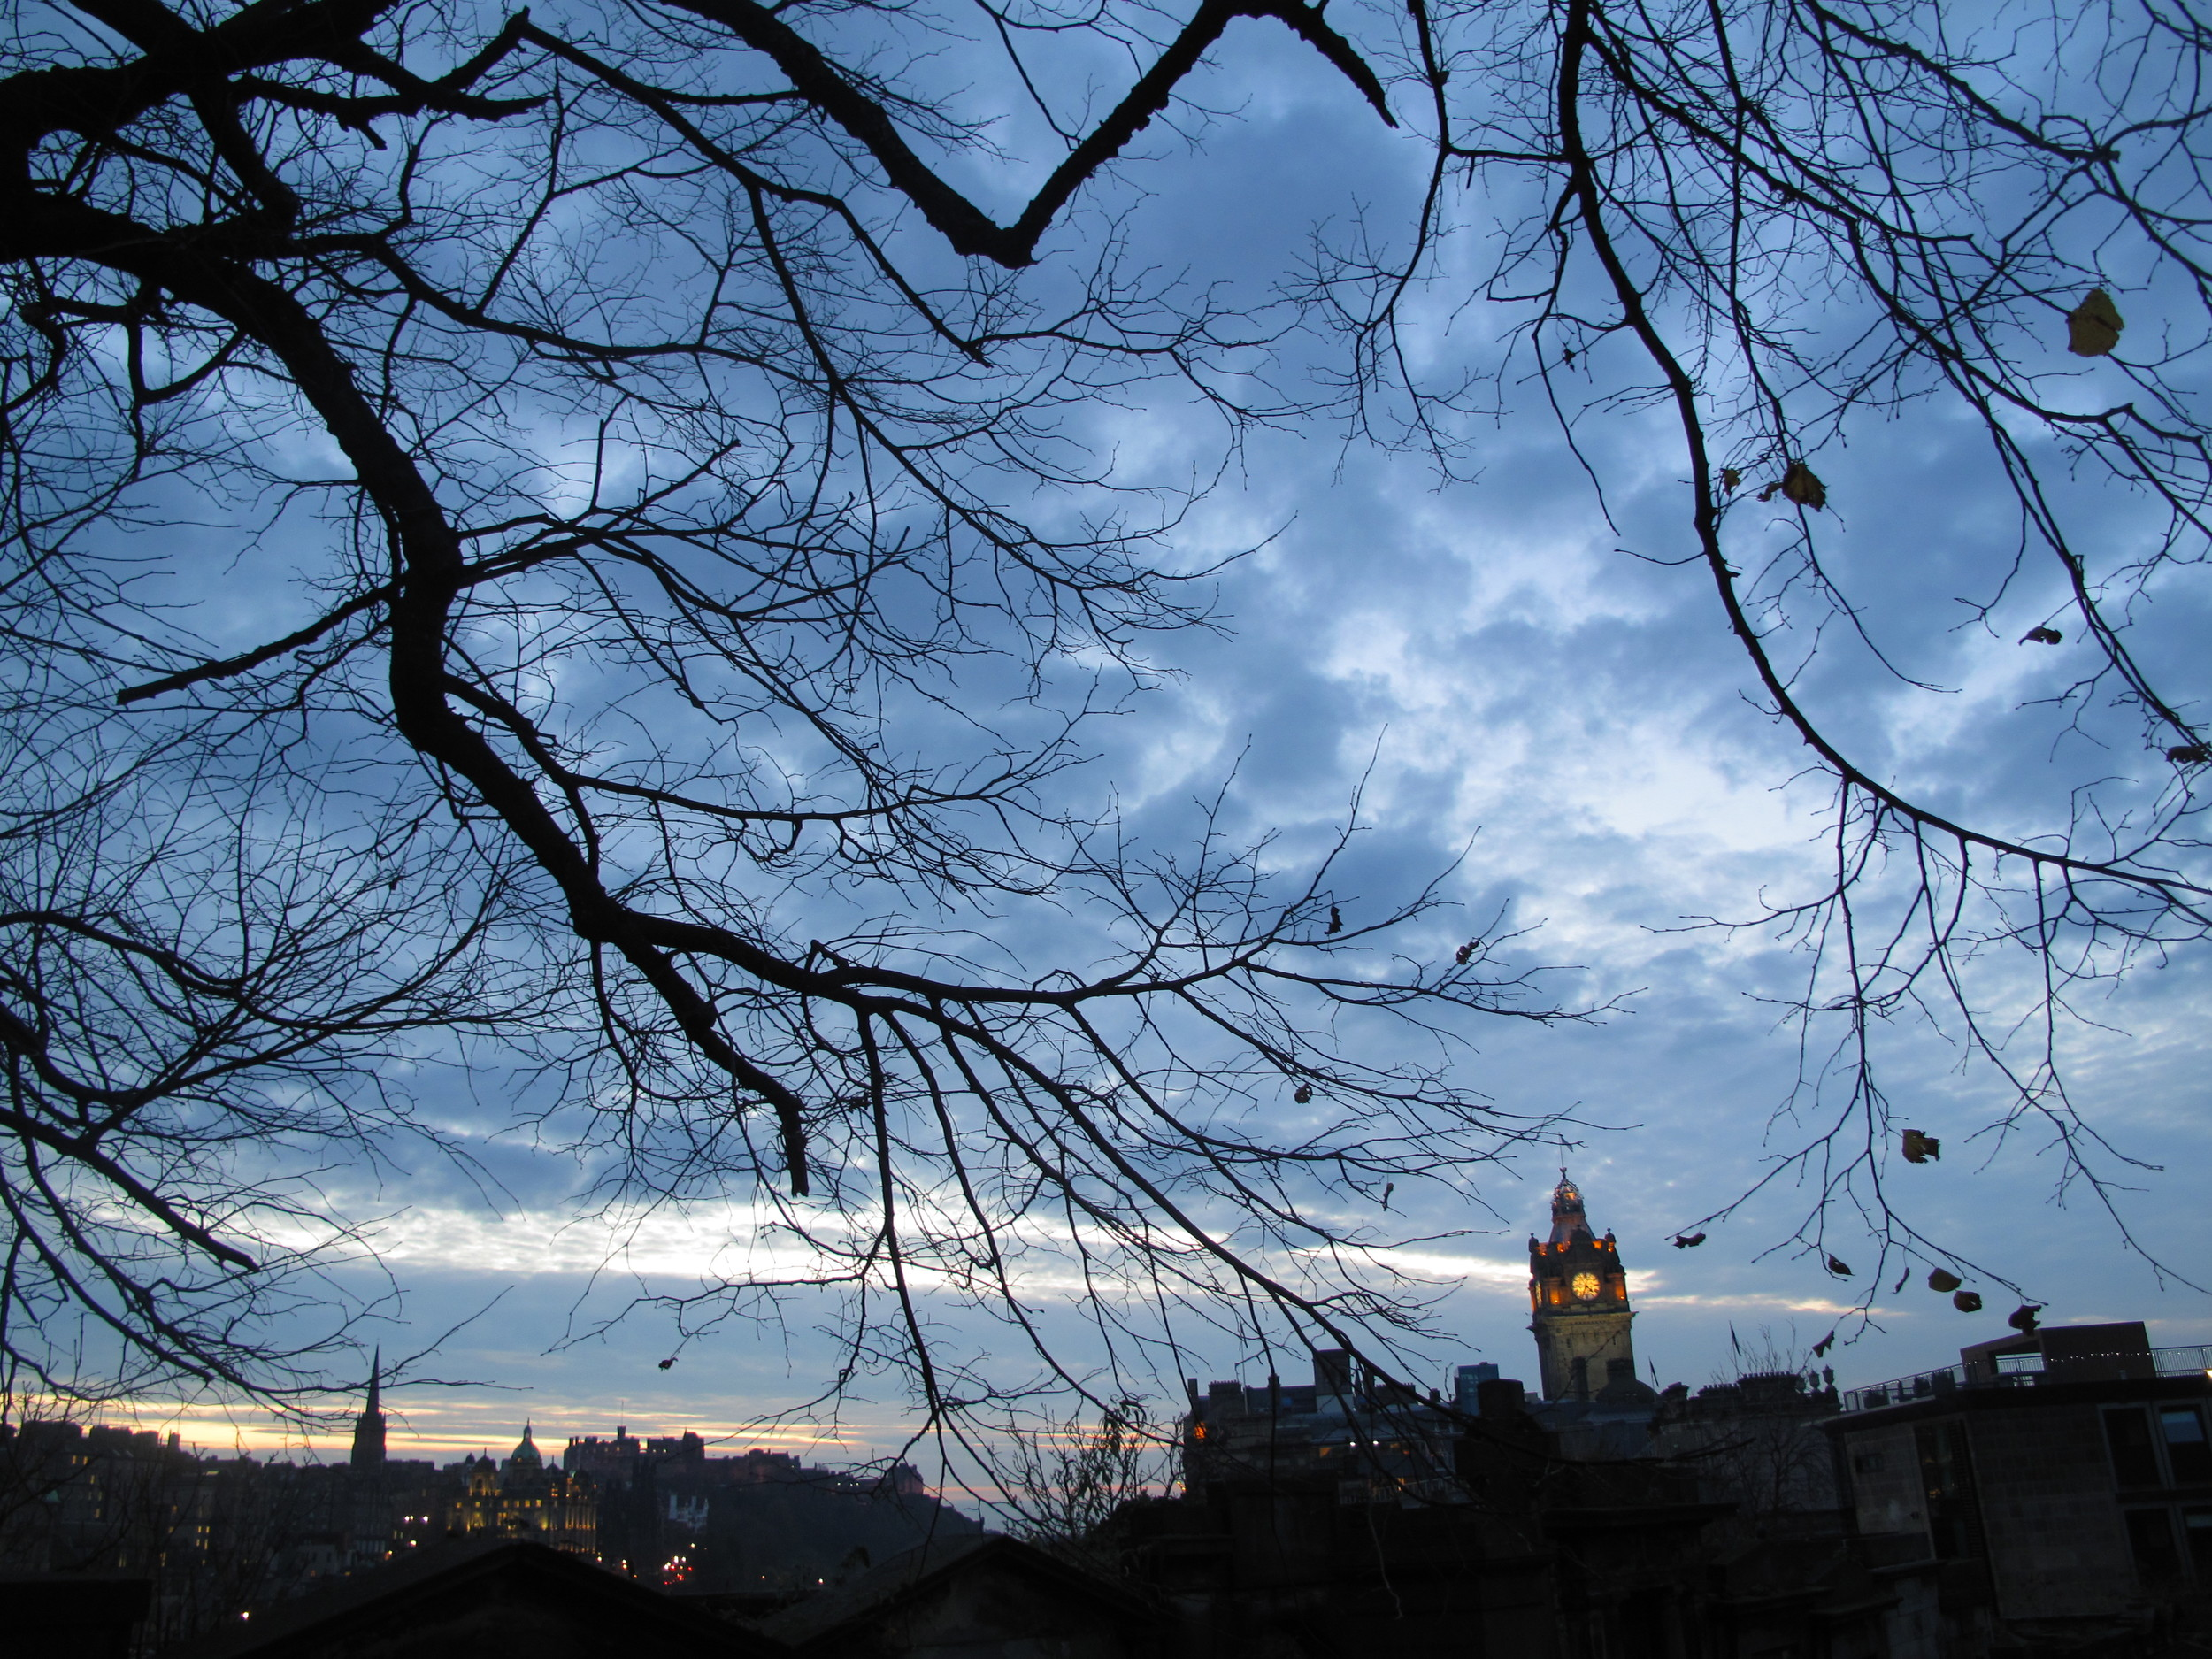 Looking over Edinburgh Old Town from Calton Hill, through winter trees.